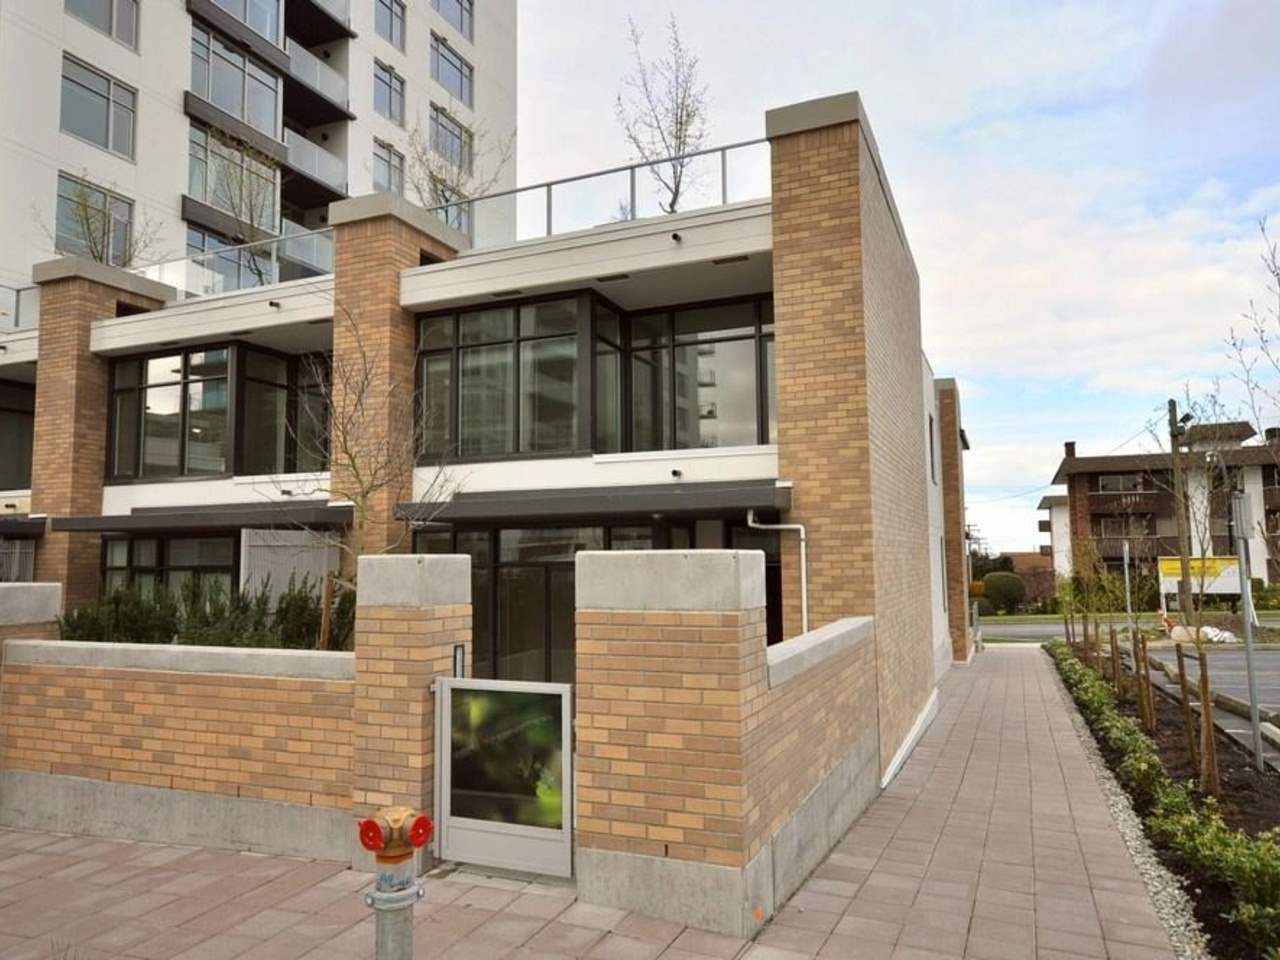 Main Photo: 1329 CIVIC PLACE MEWS in North Vancouver: Central Lonsdale Townhouse for sale : MLS®# R2114138